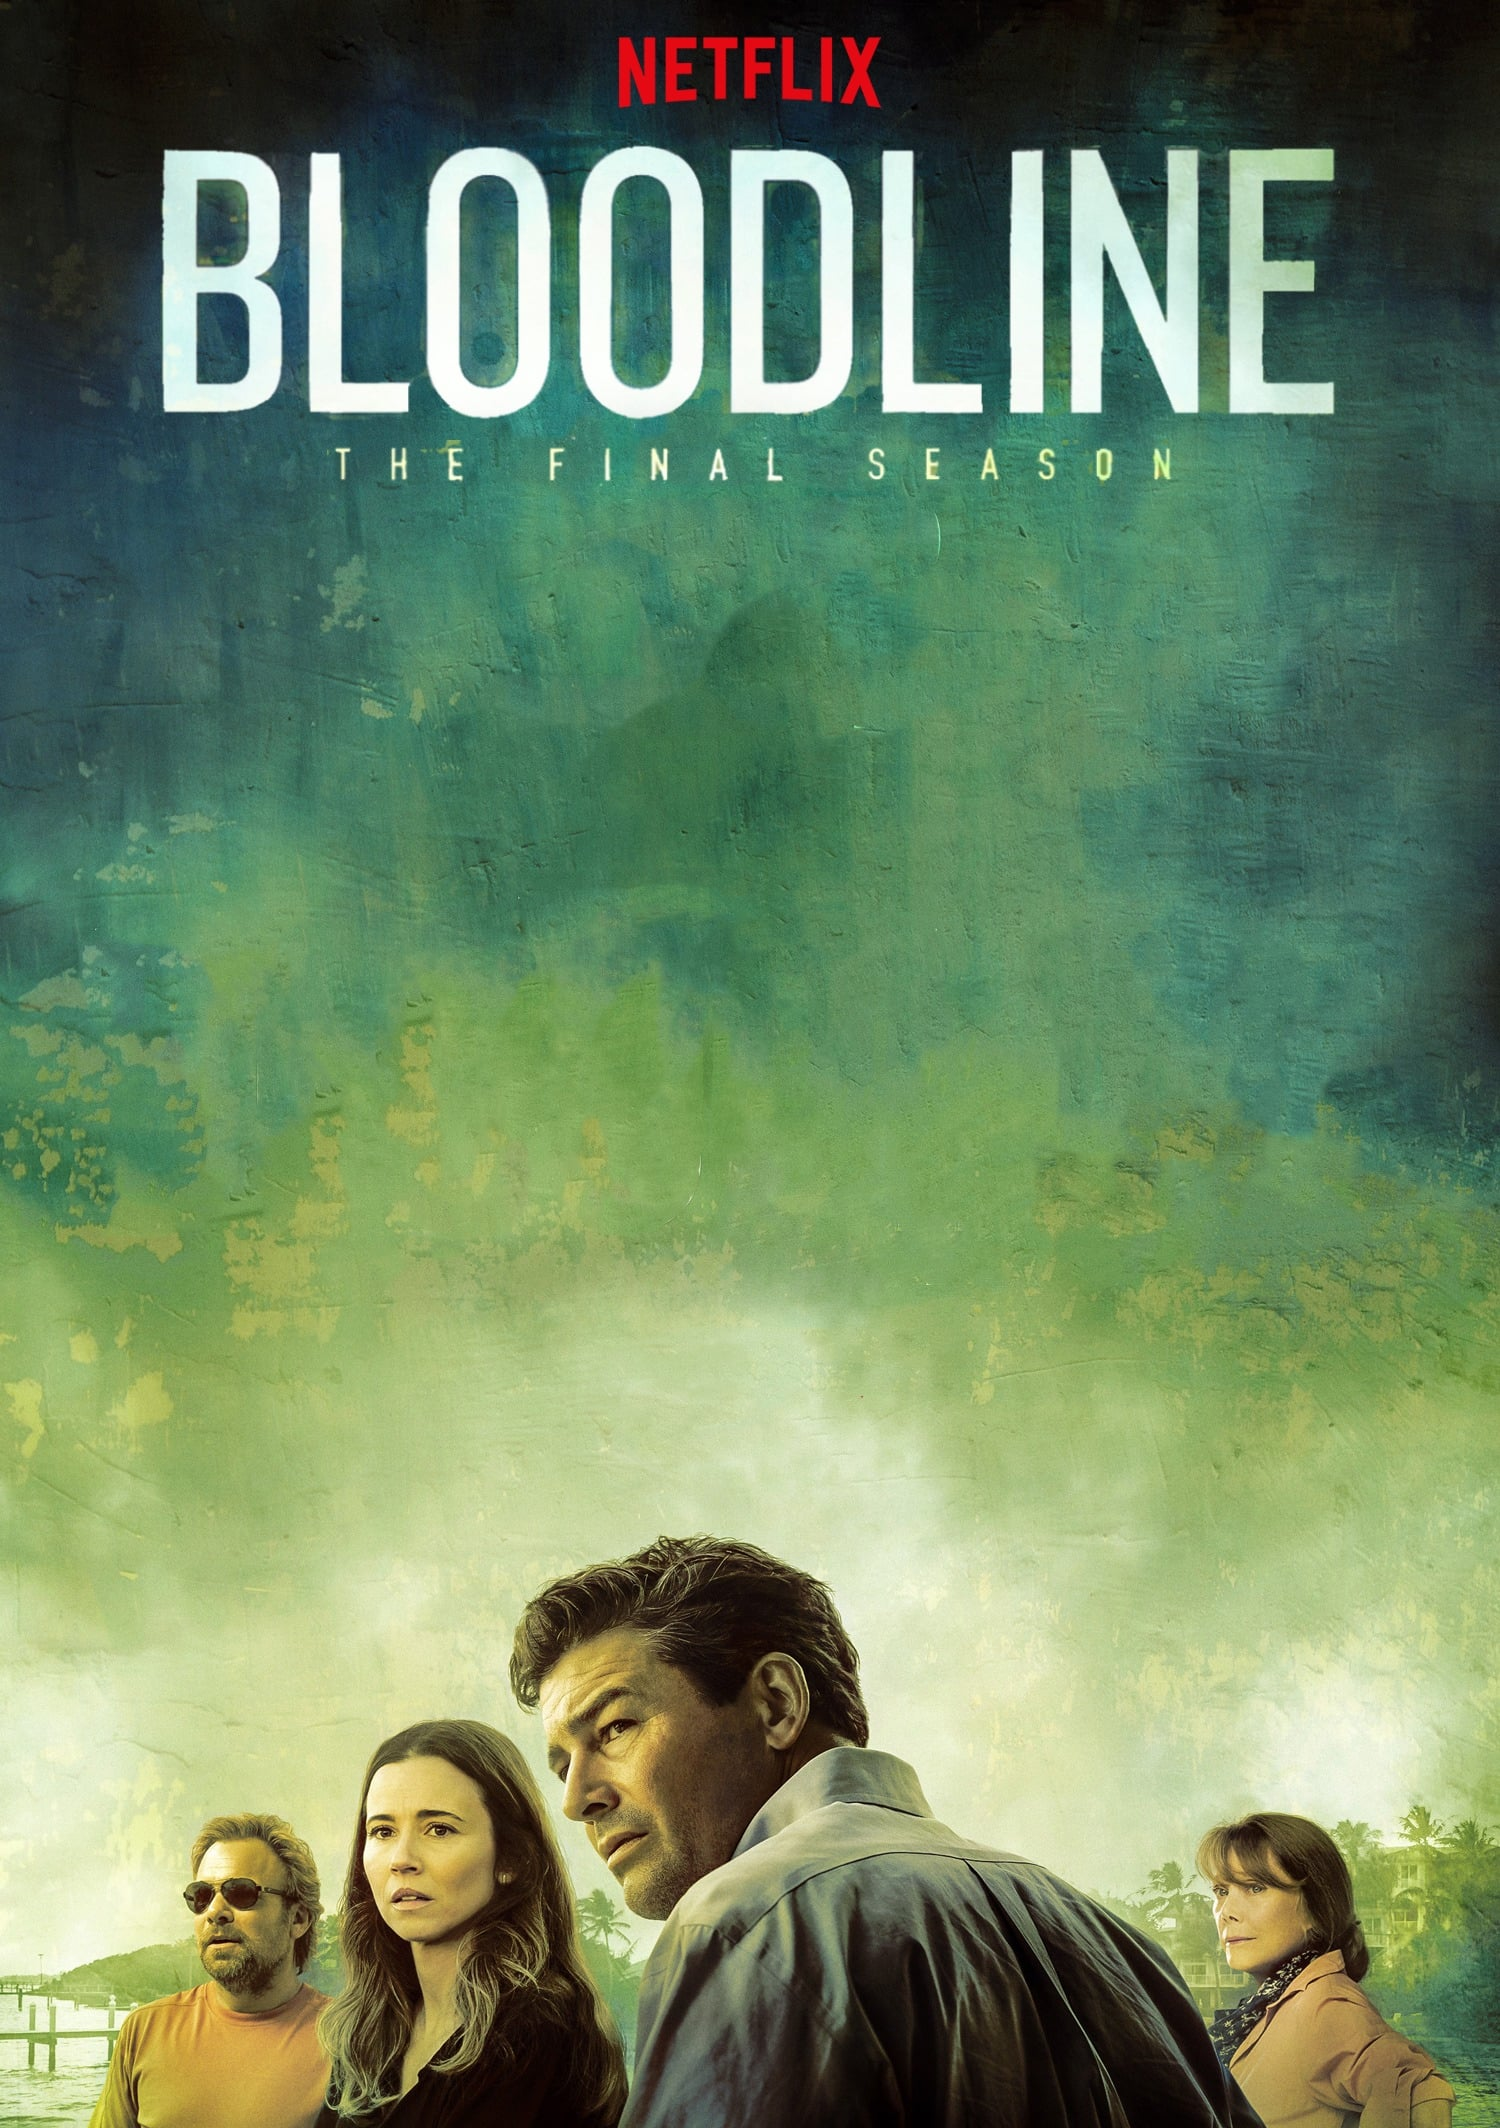 BLOODLINE SEASON 3 putlocker 4k